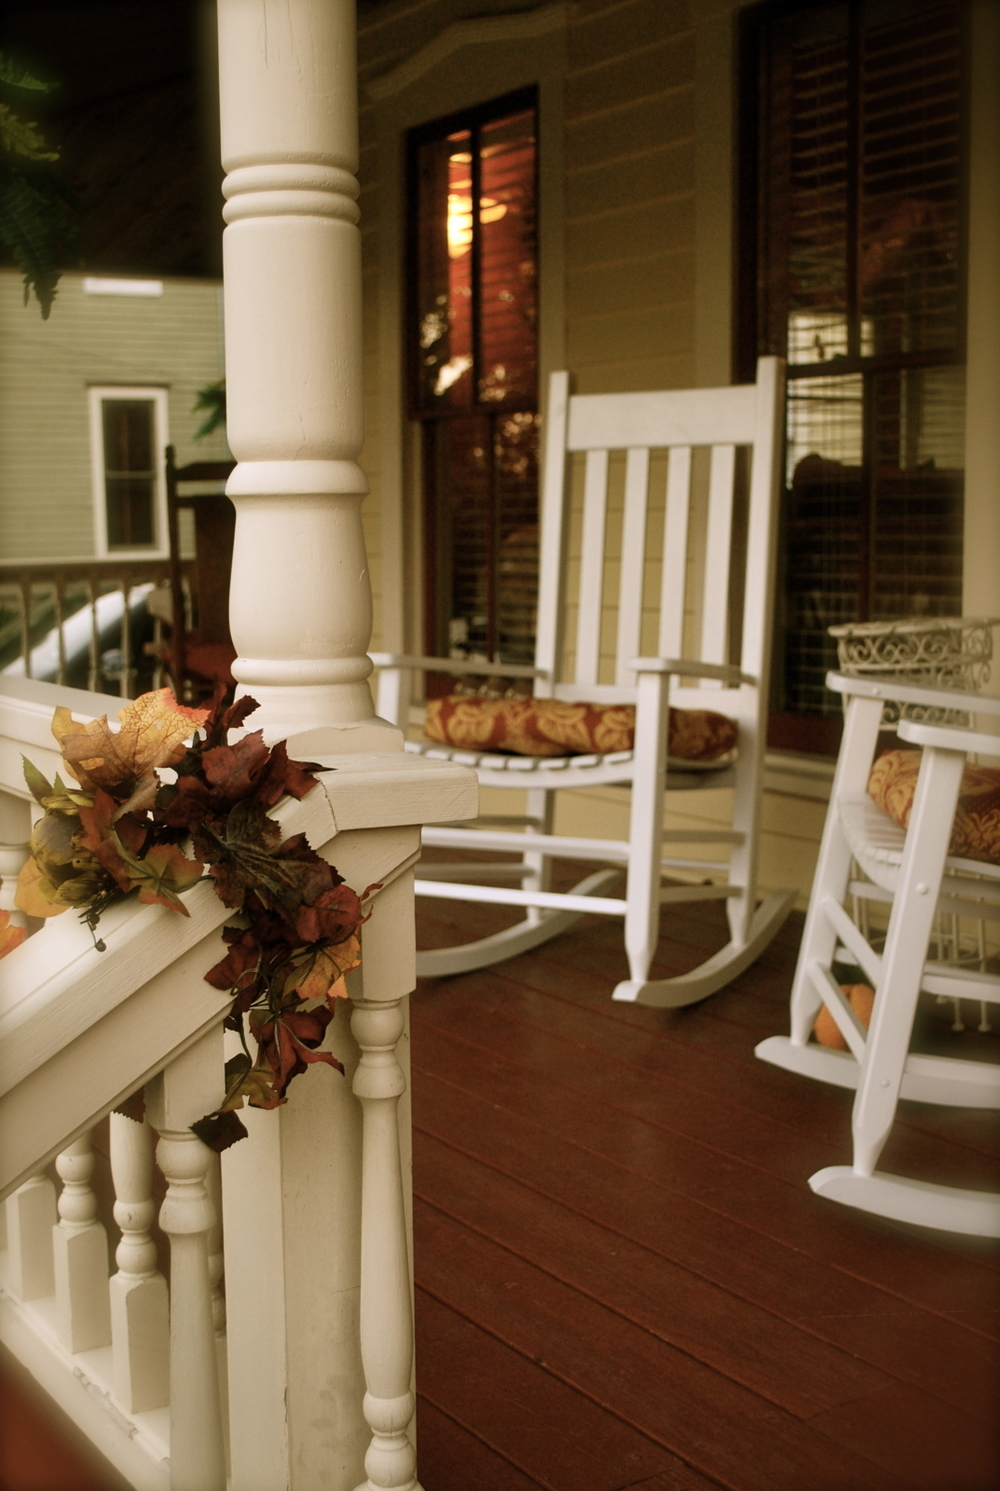 Finish off a bad week with a really good porch!